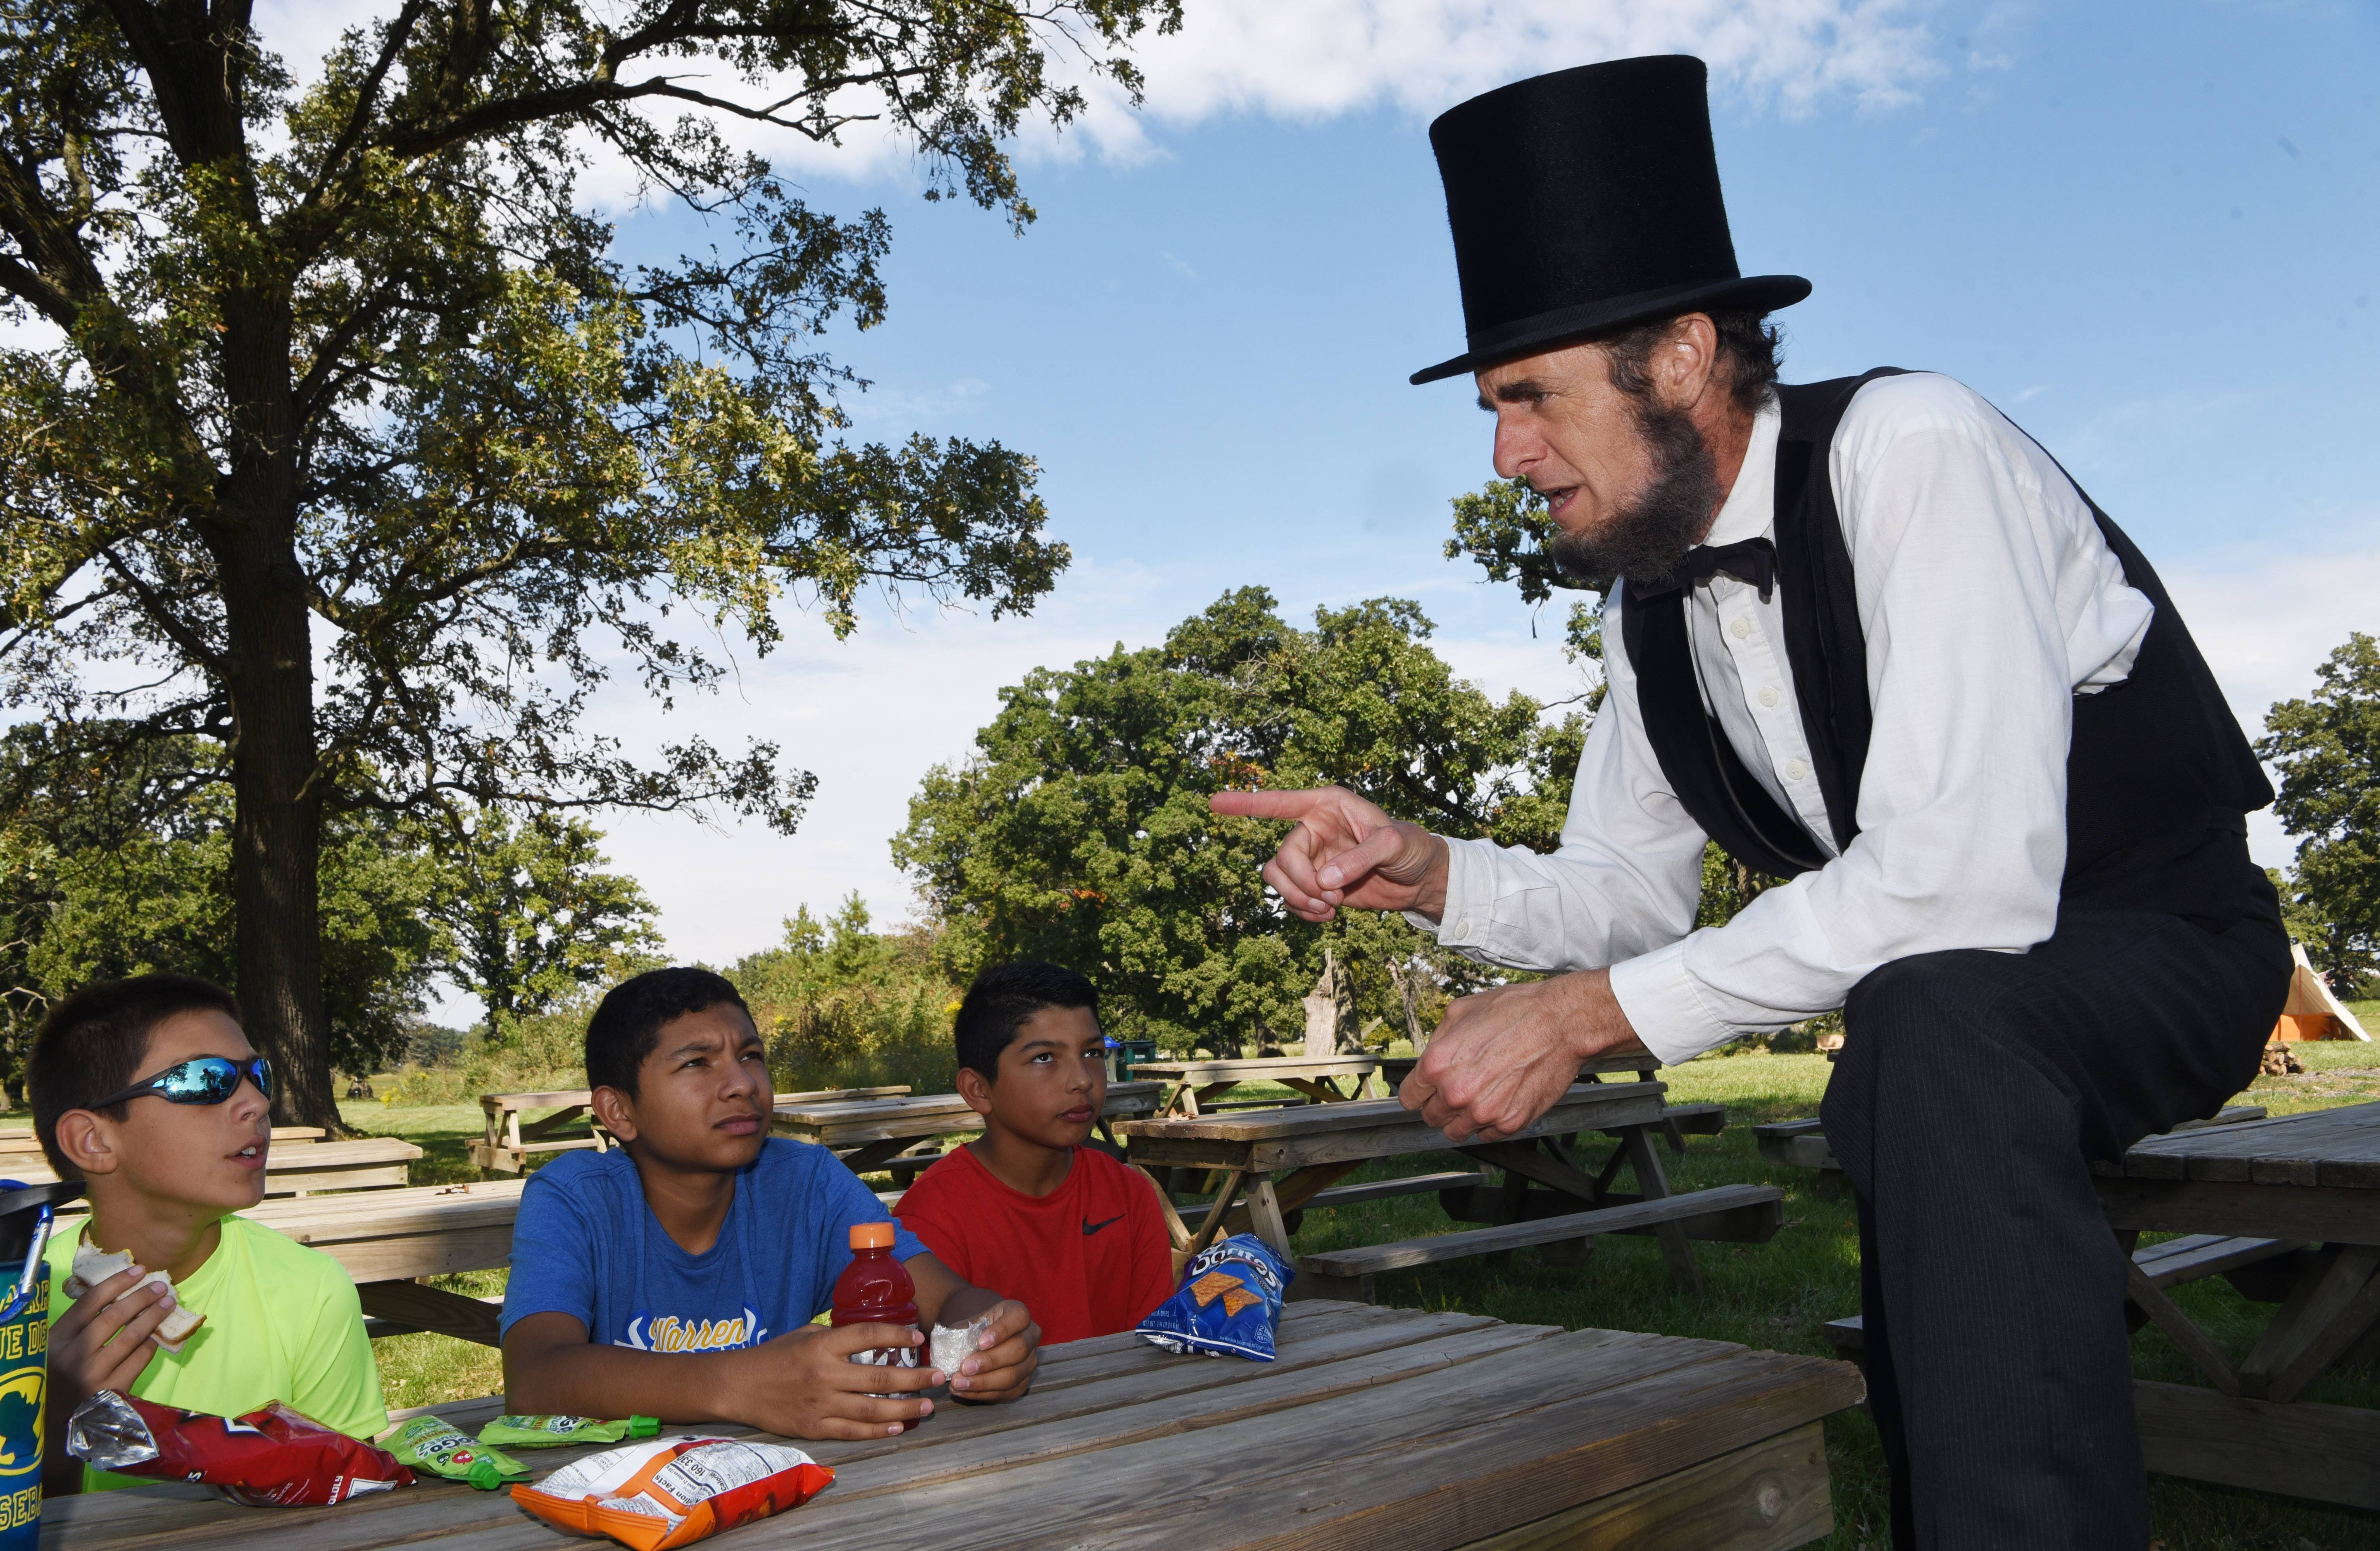 President Abraham Lincoln, portrayed by Kevin Wood of Oak Park, visits with Jake Jurkacek, 11, left, of Round Lake Park and Jacob Rolon, 13, of Round Lake Beach and his brother, Javier, 10, as they have lunch in the picnic grove during a Civil War reenactment in Hainesville Sunday.